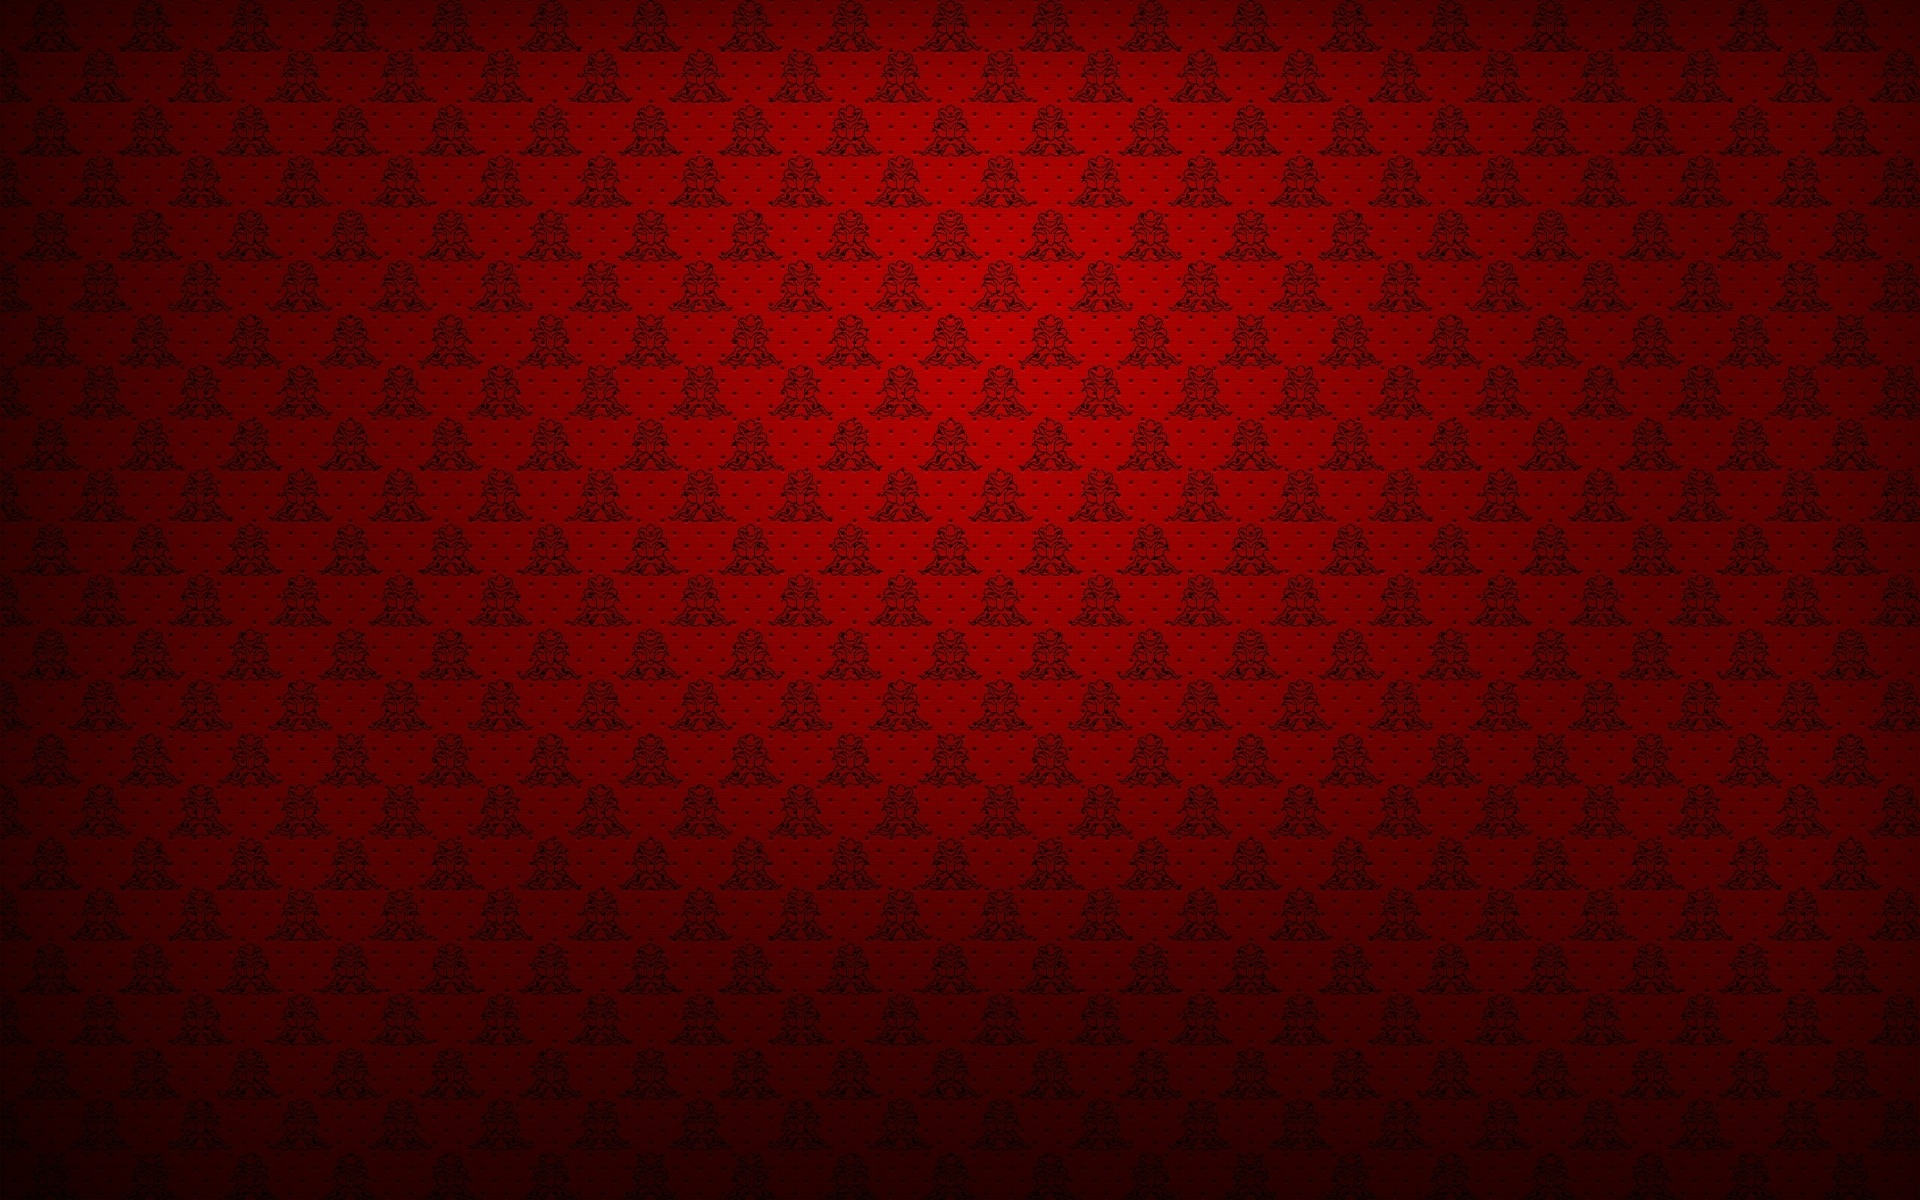 Best-new-background-patterns-Red-Patterns-1920-Red-Patterns-Background-Imageif-thr-wallpaper-wpc9002839